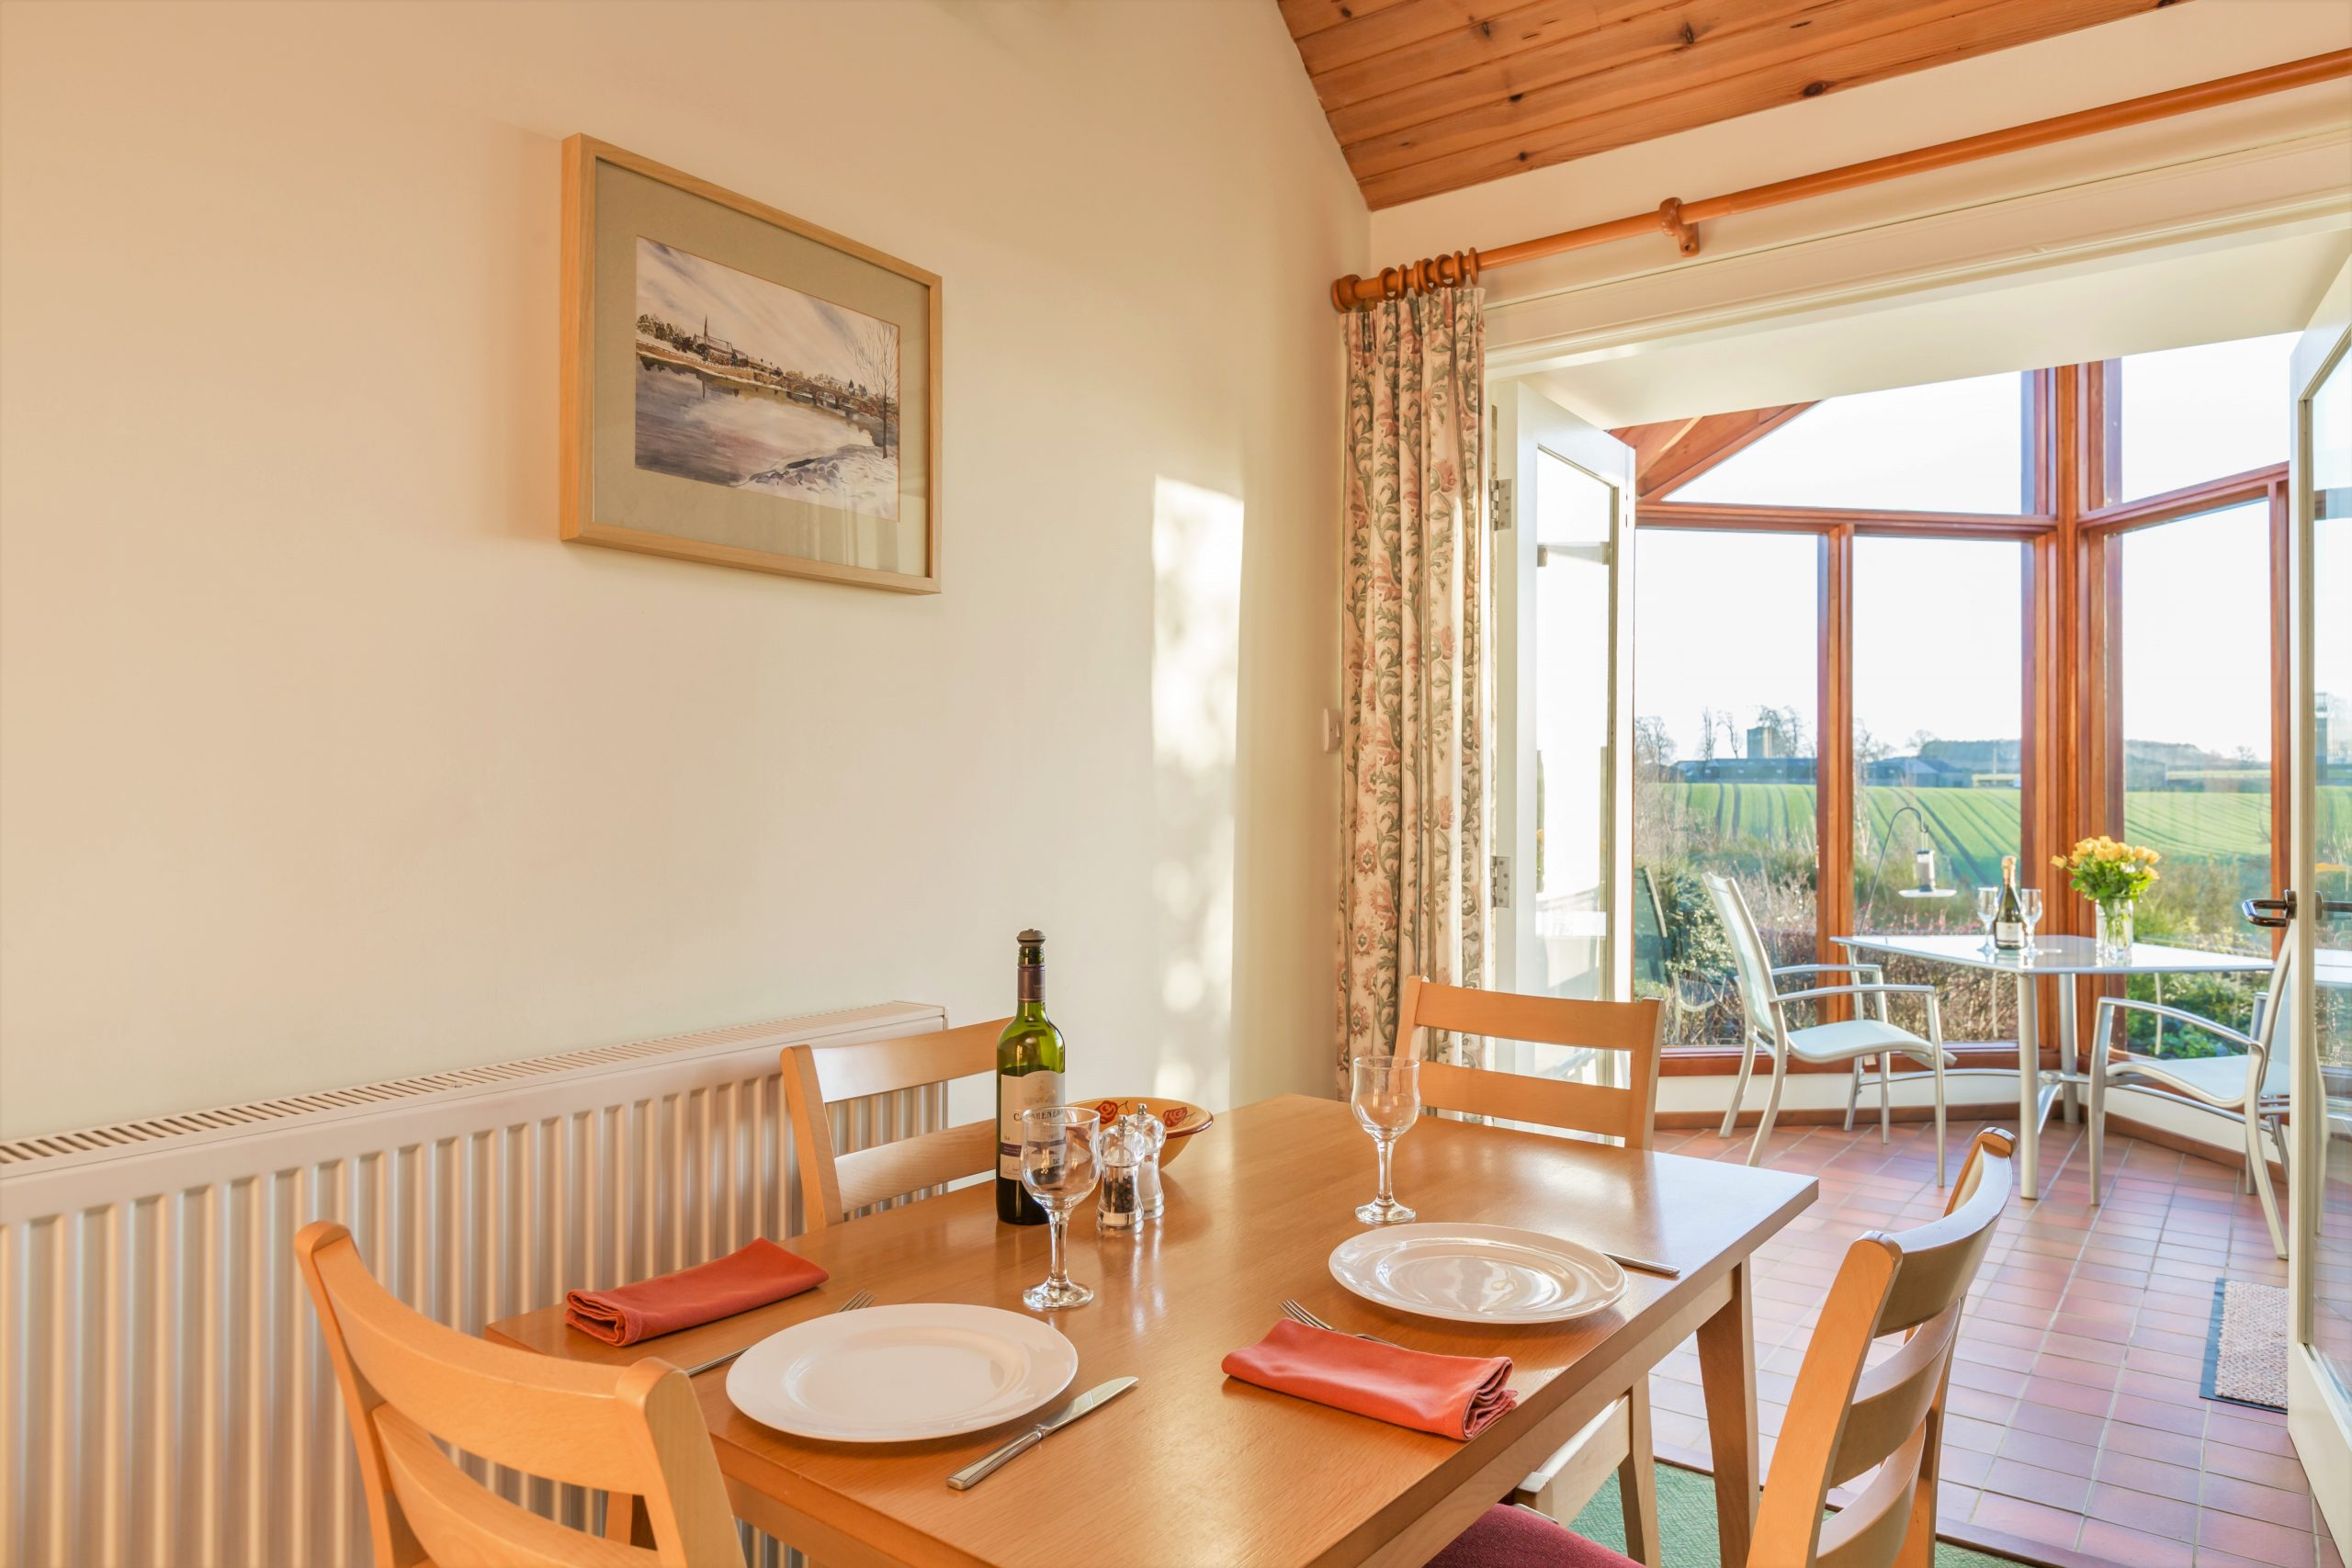 Cottage dining area